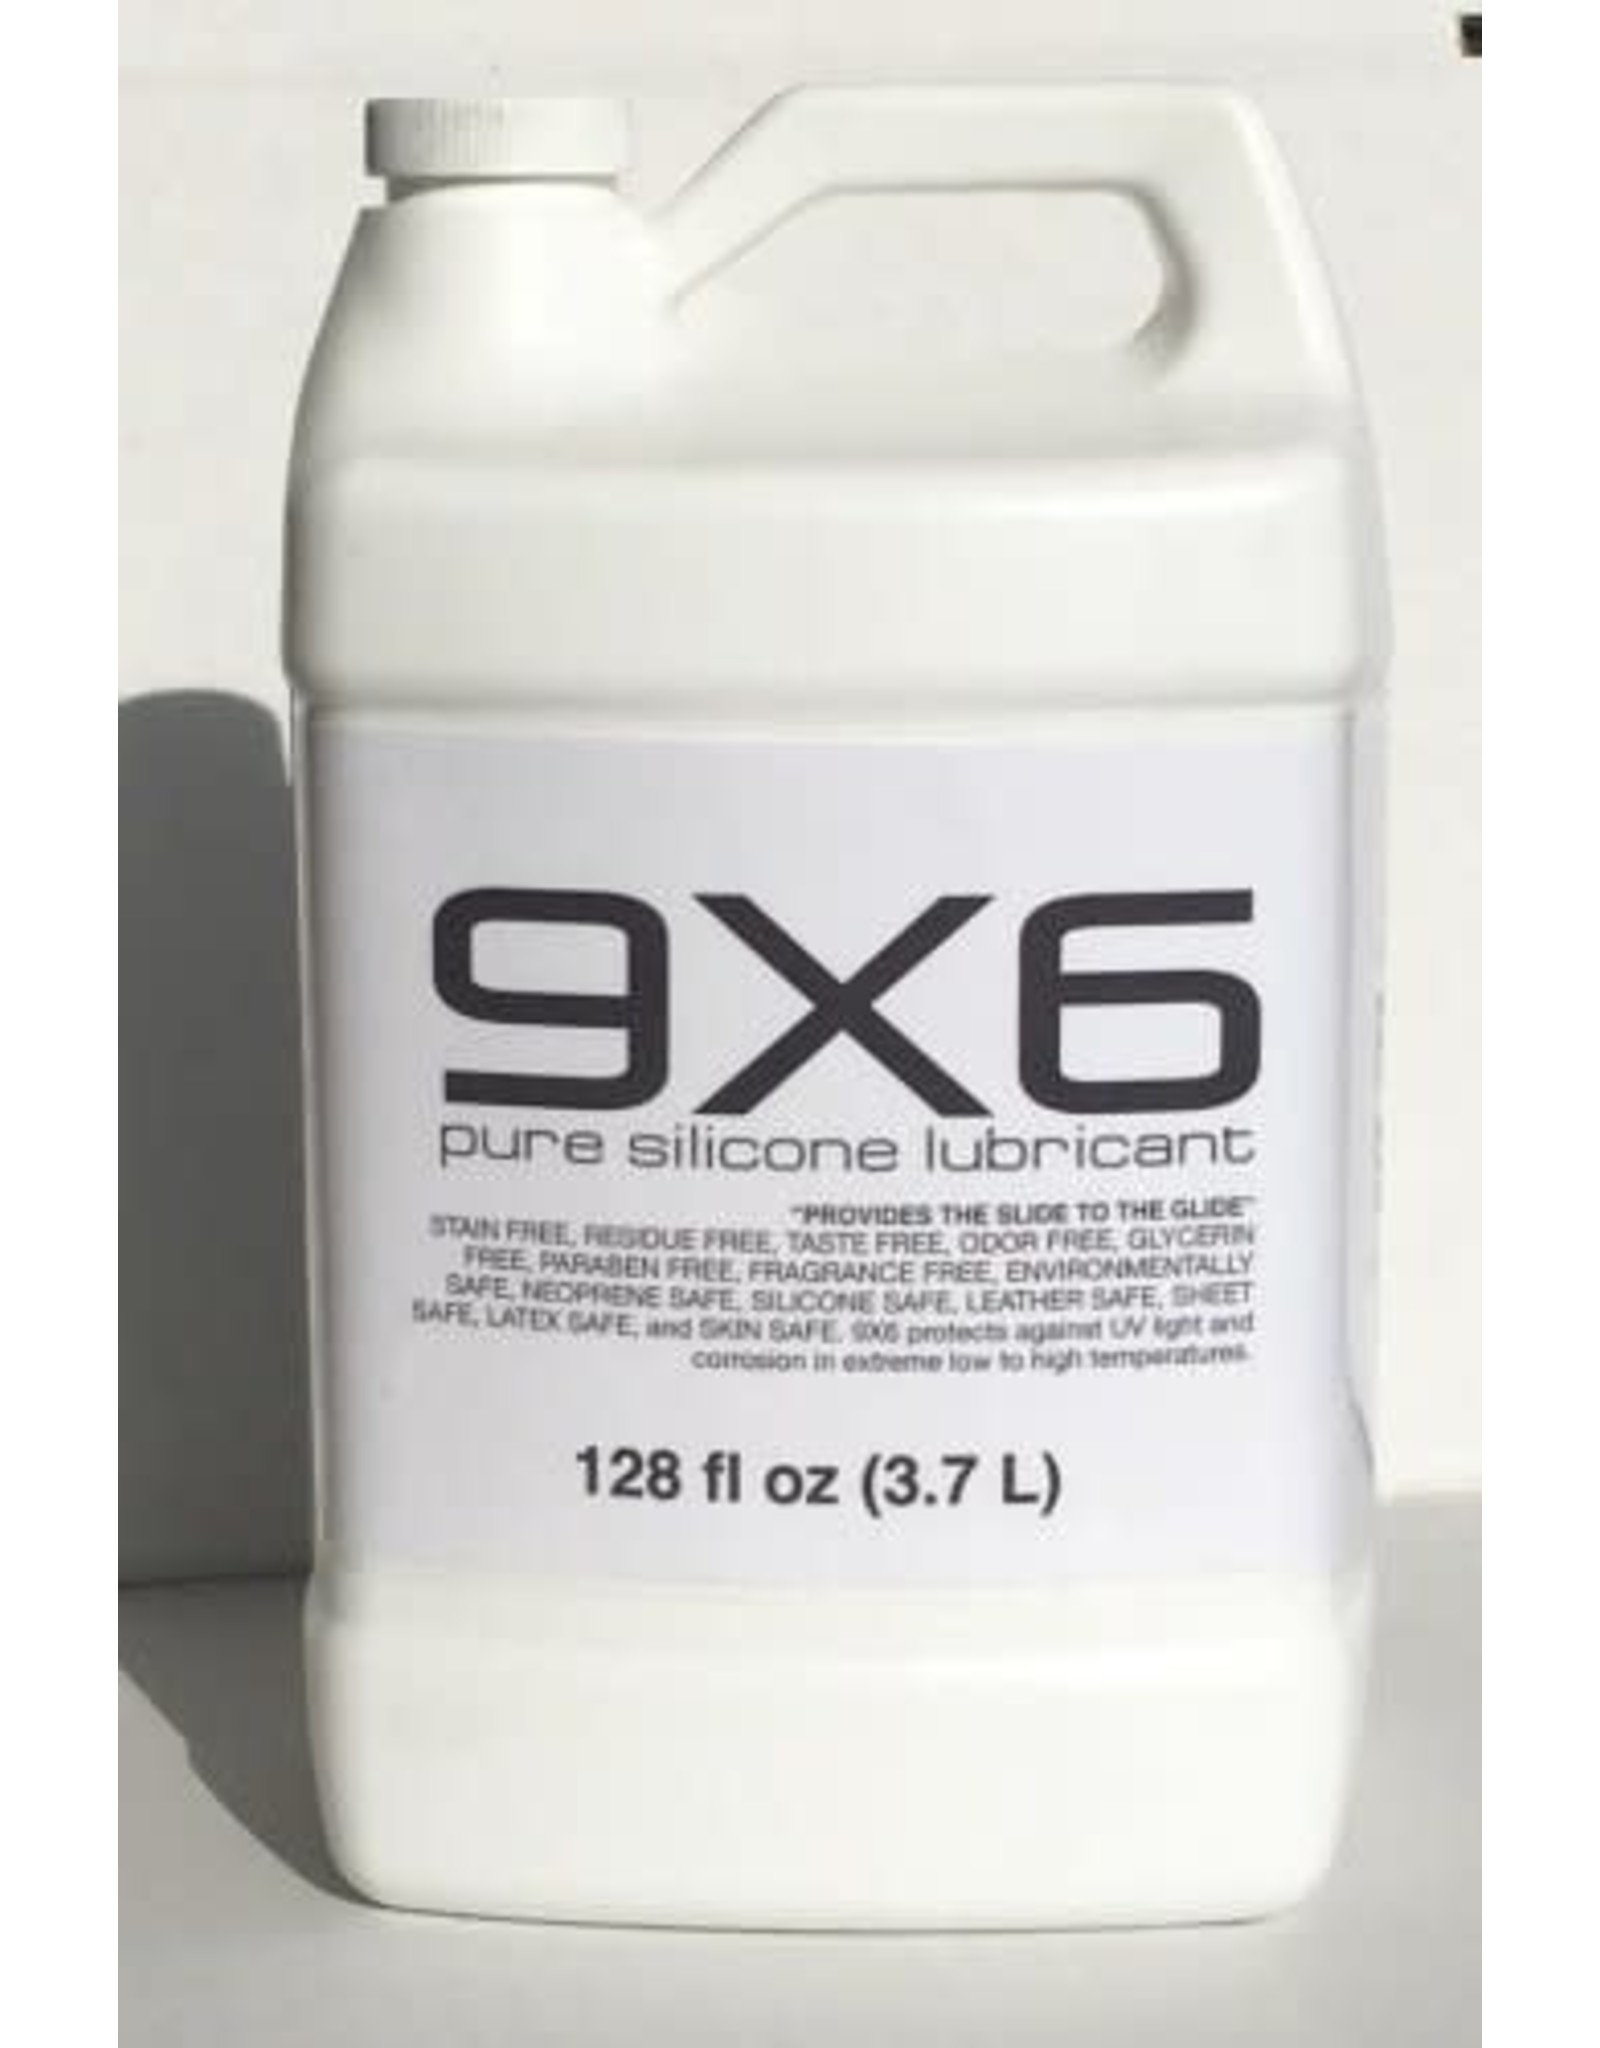 9 x 6 Lube 9 X 6 Silicone Lube